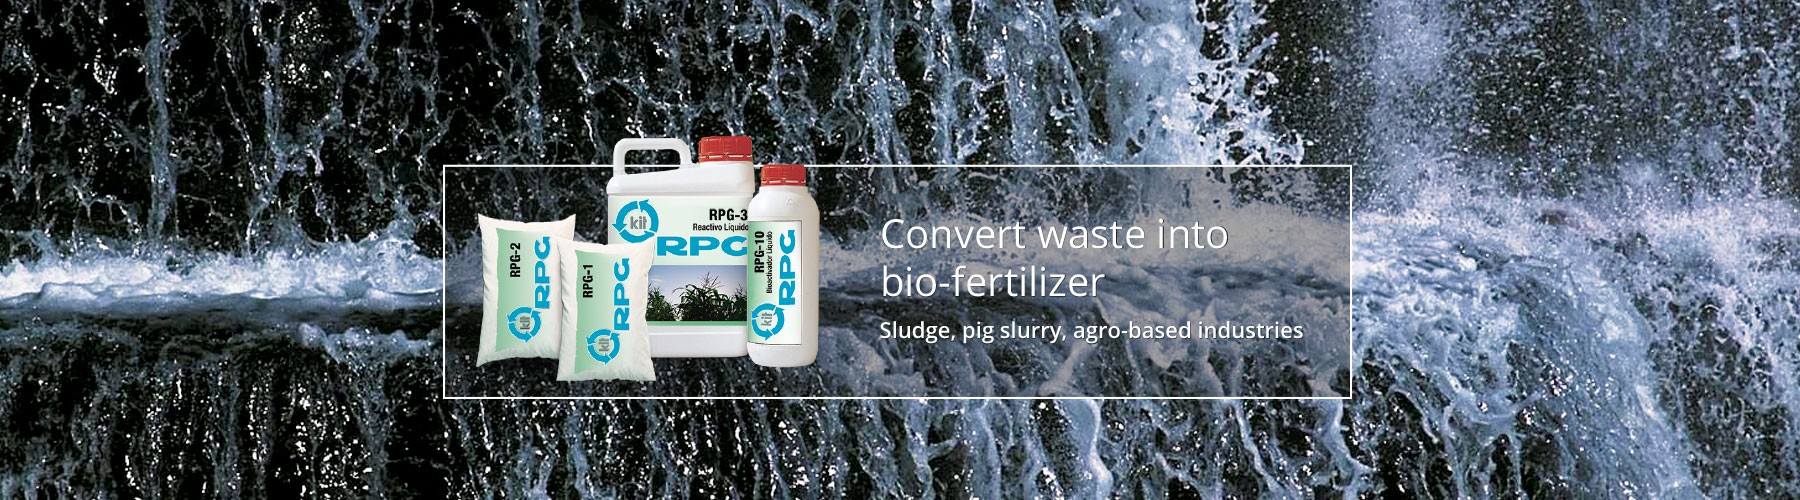 Convert waste into bio-fertilizer